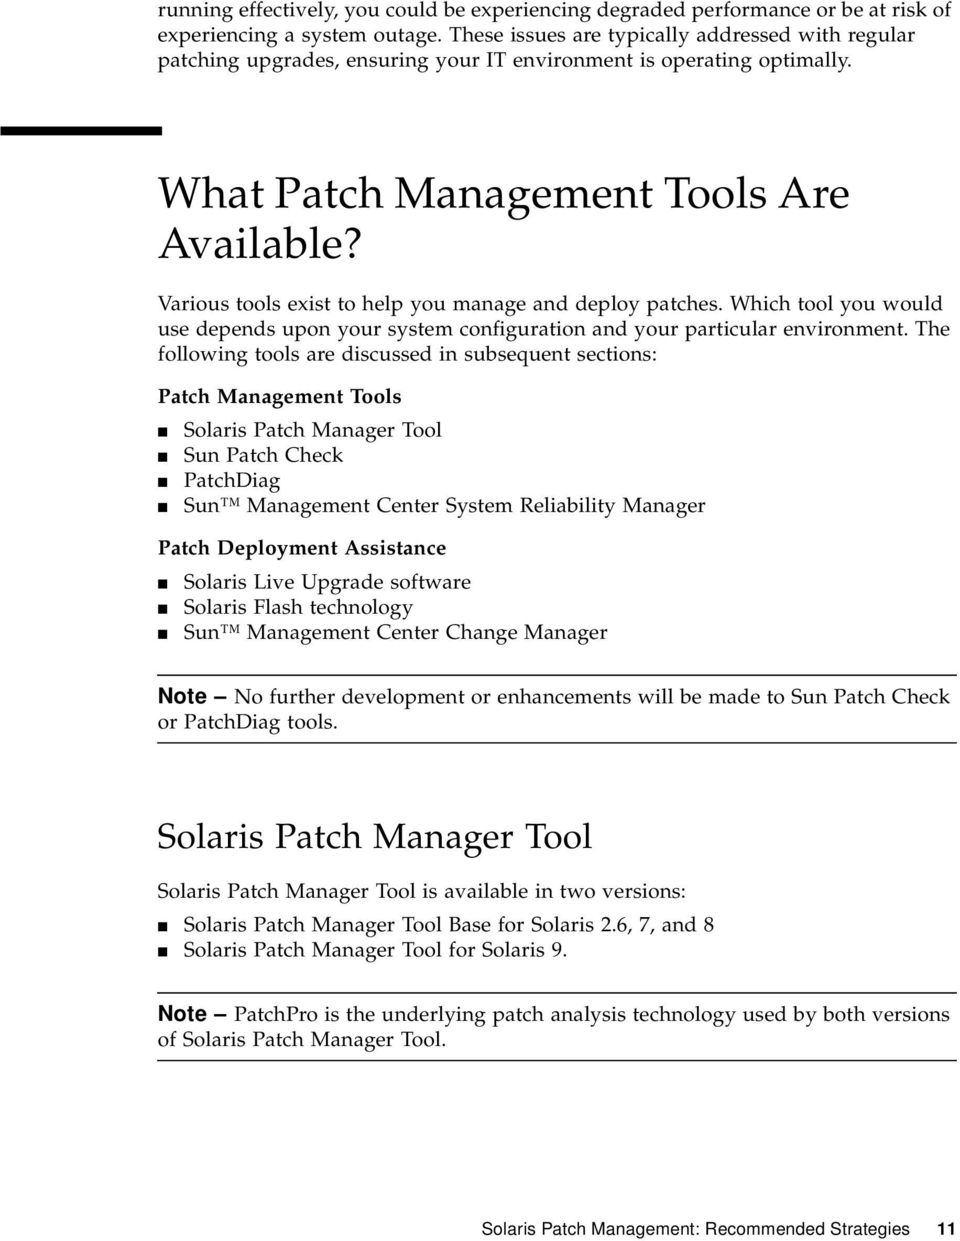 Various tools exist to help you manage and deploy patches. Which tool you would use depends upon your system configuration and your particular environment.